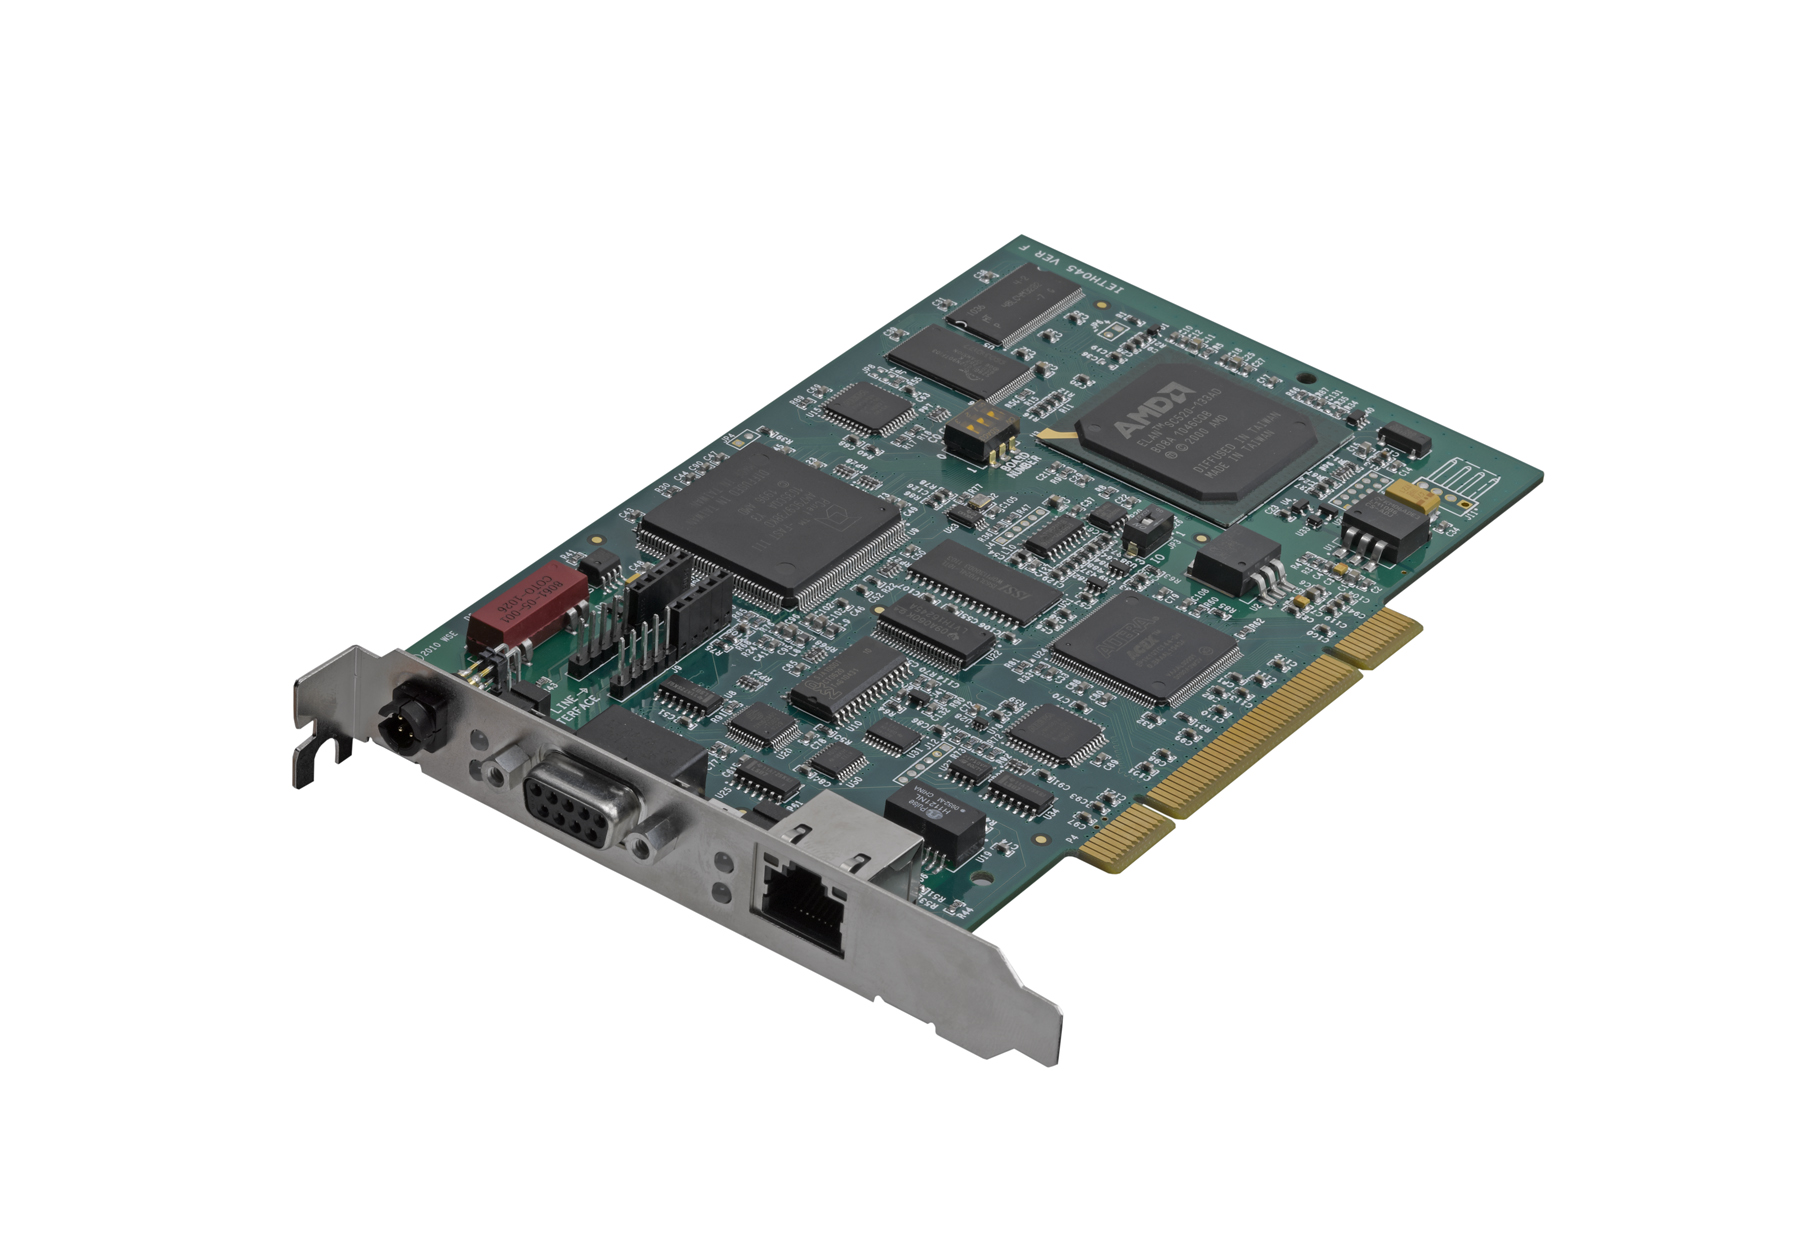 brad® pc based network interface cards featured at industrial brad® pc based network interface card